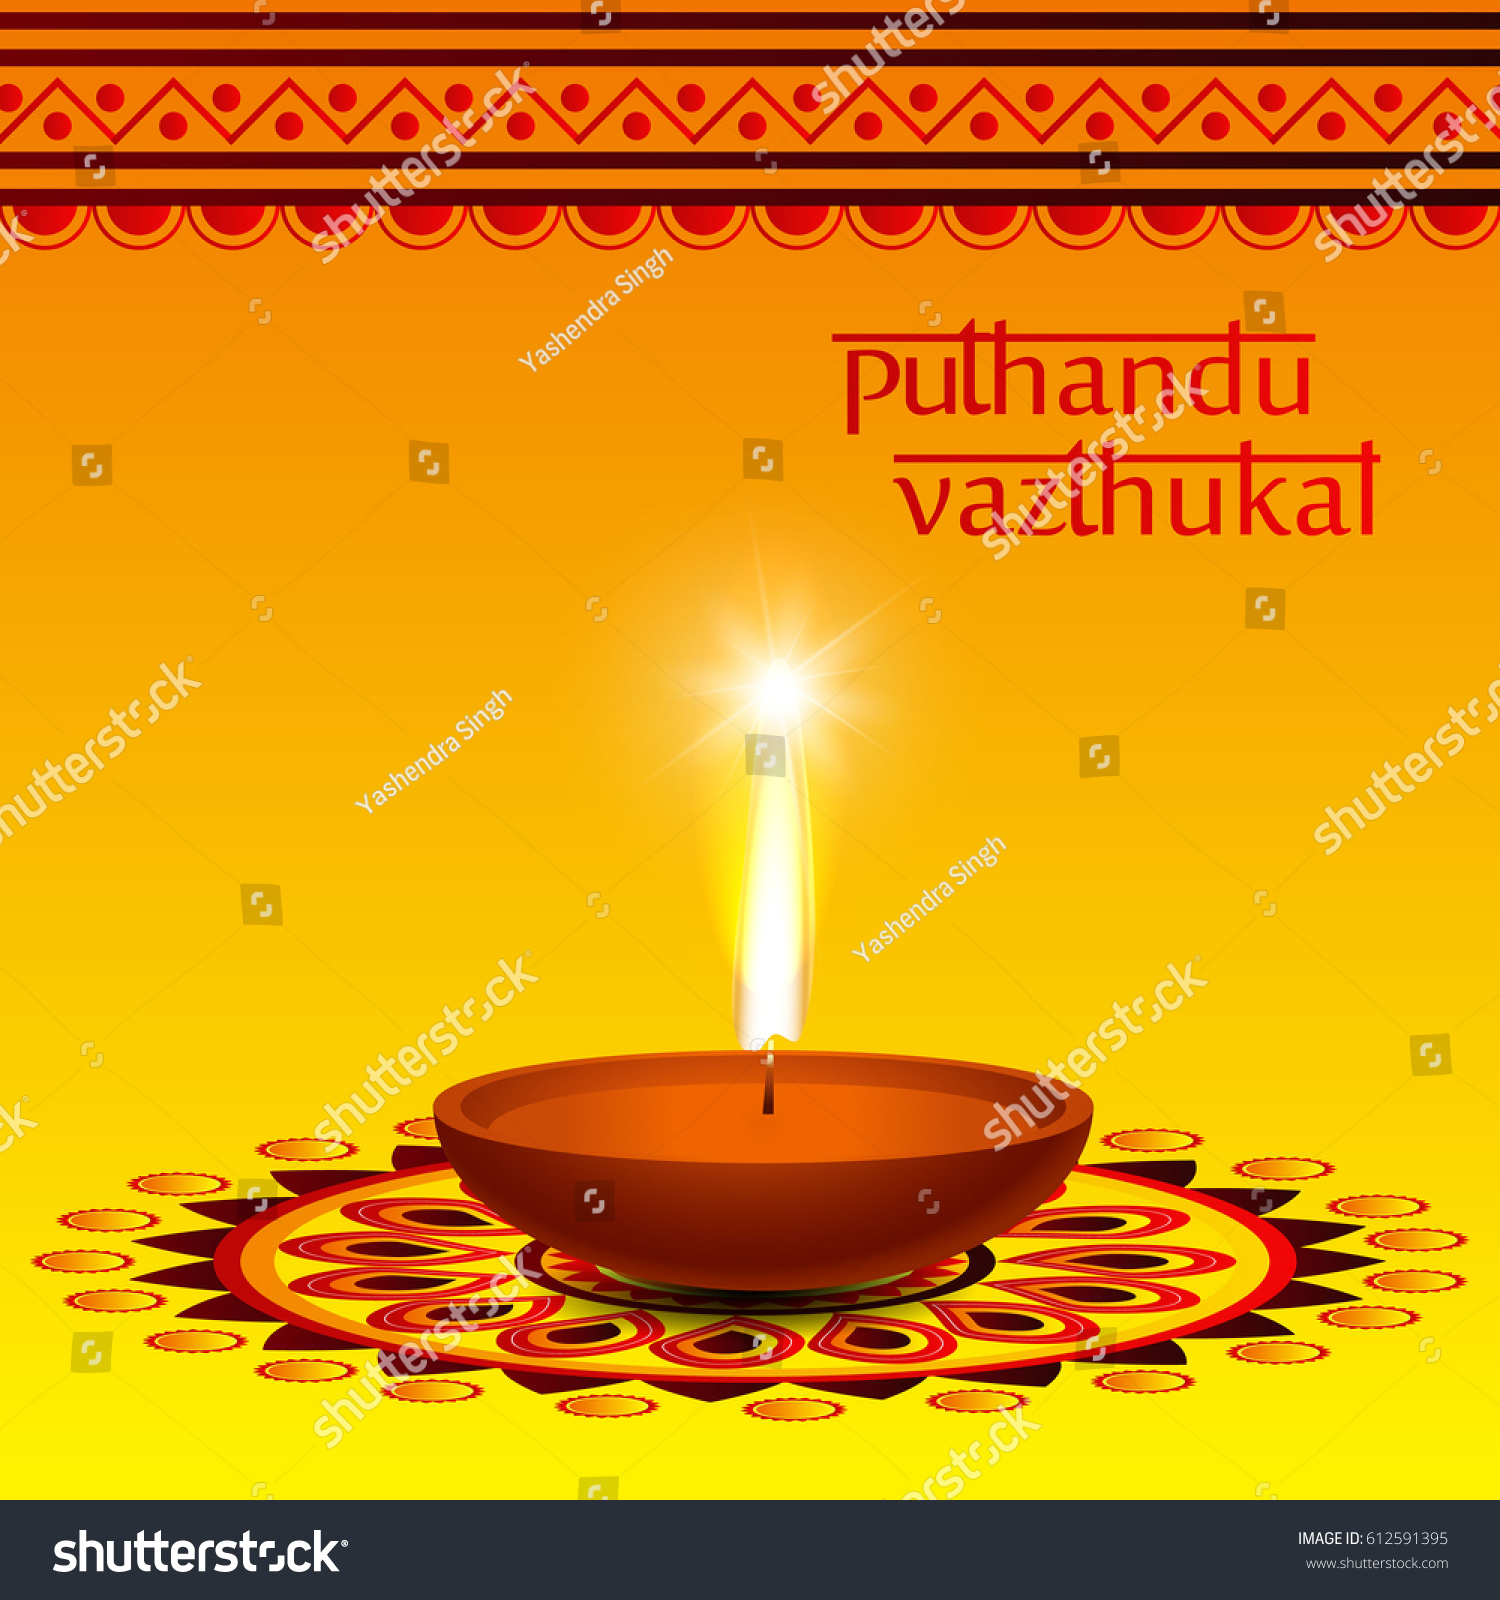 Creative Vector Illustration On Tamil New Stock Vector Royalty Free